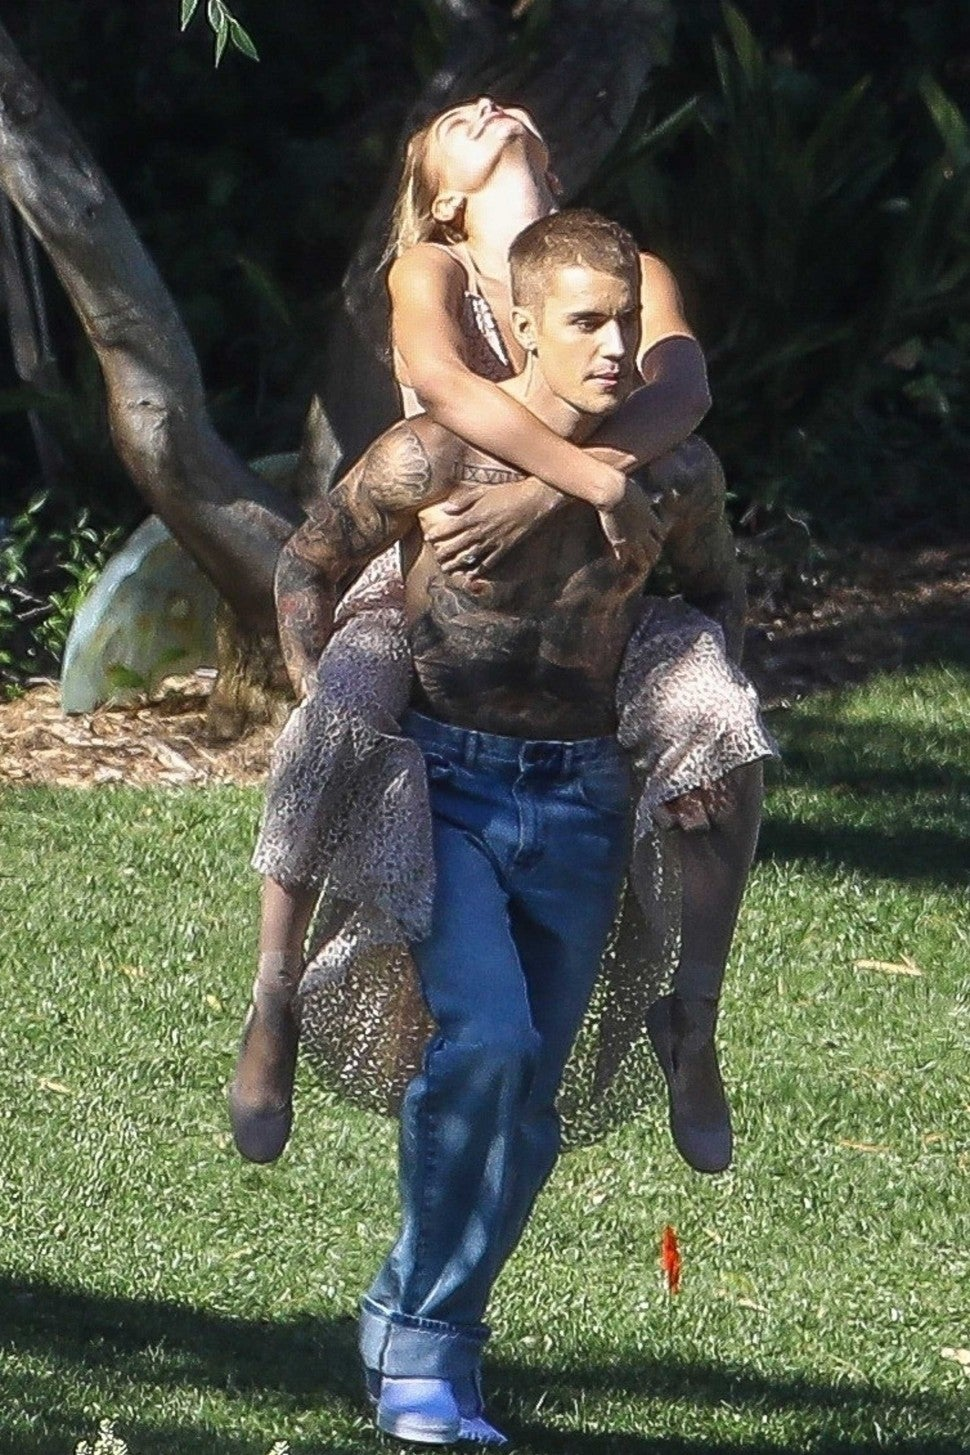 Justin Bieber and wife Hailey Baldwin pose for a photoshoot in the Hollywood Hills on Dec. 4